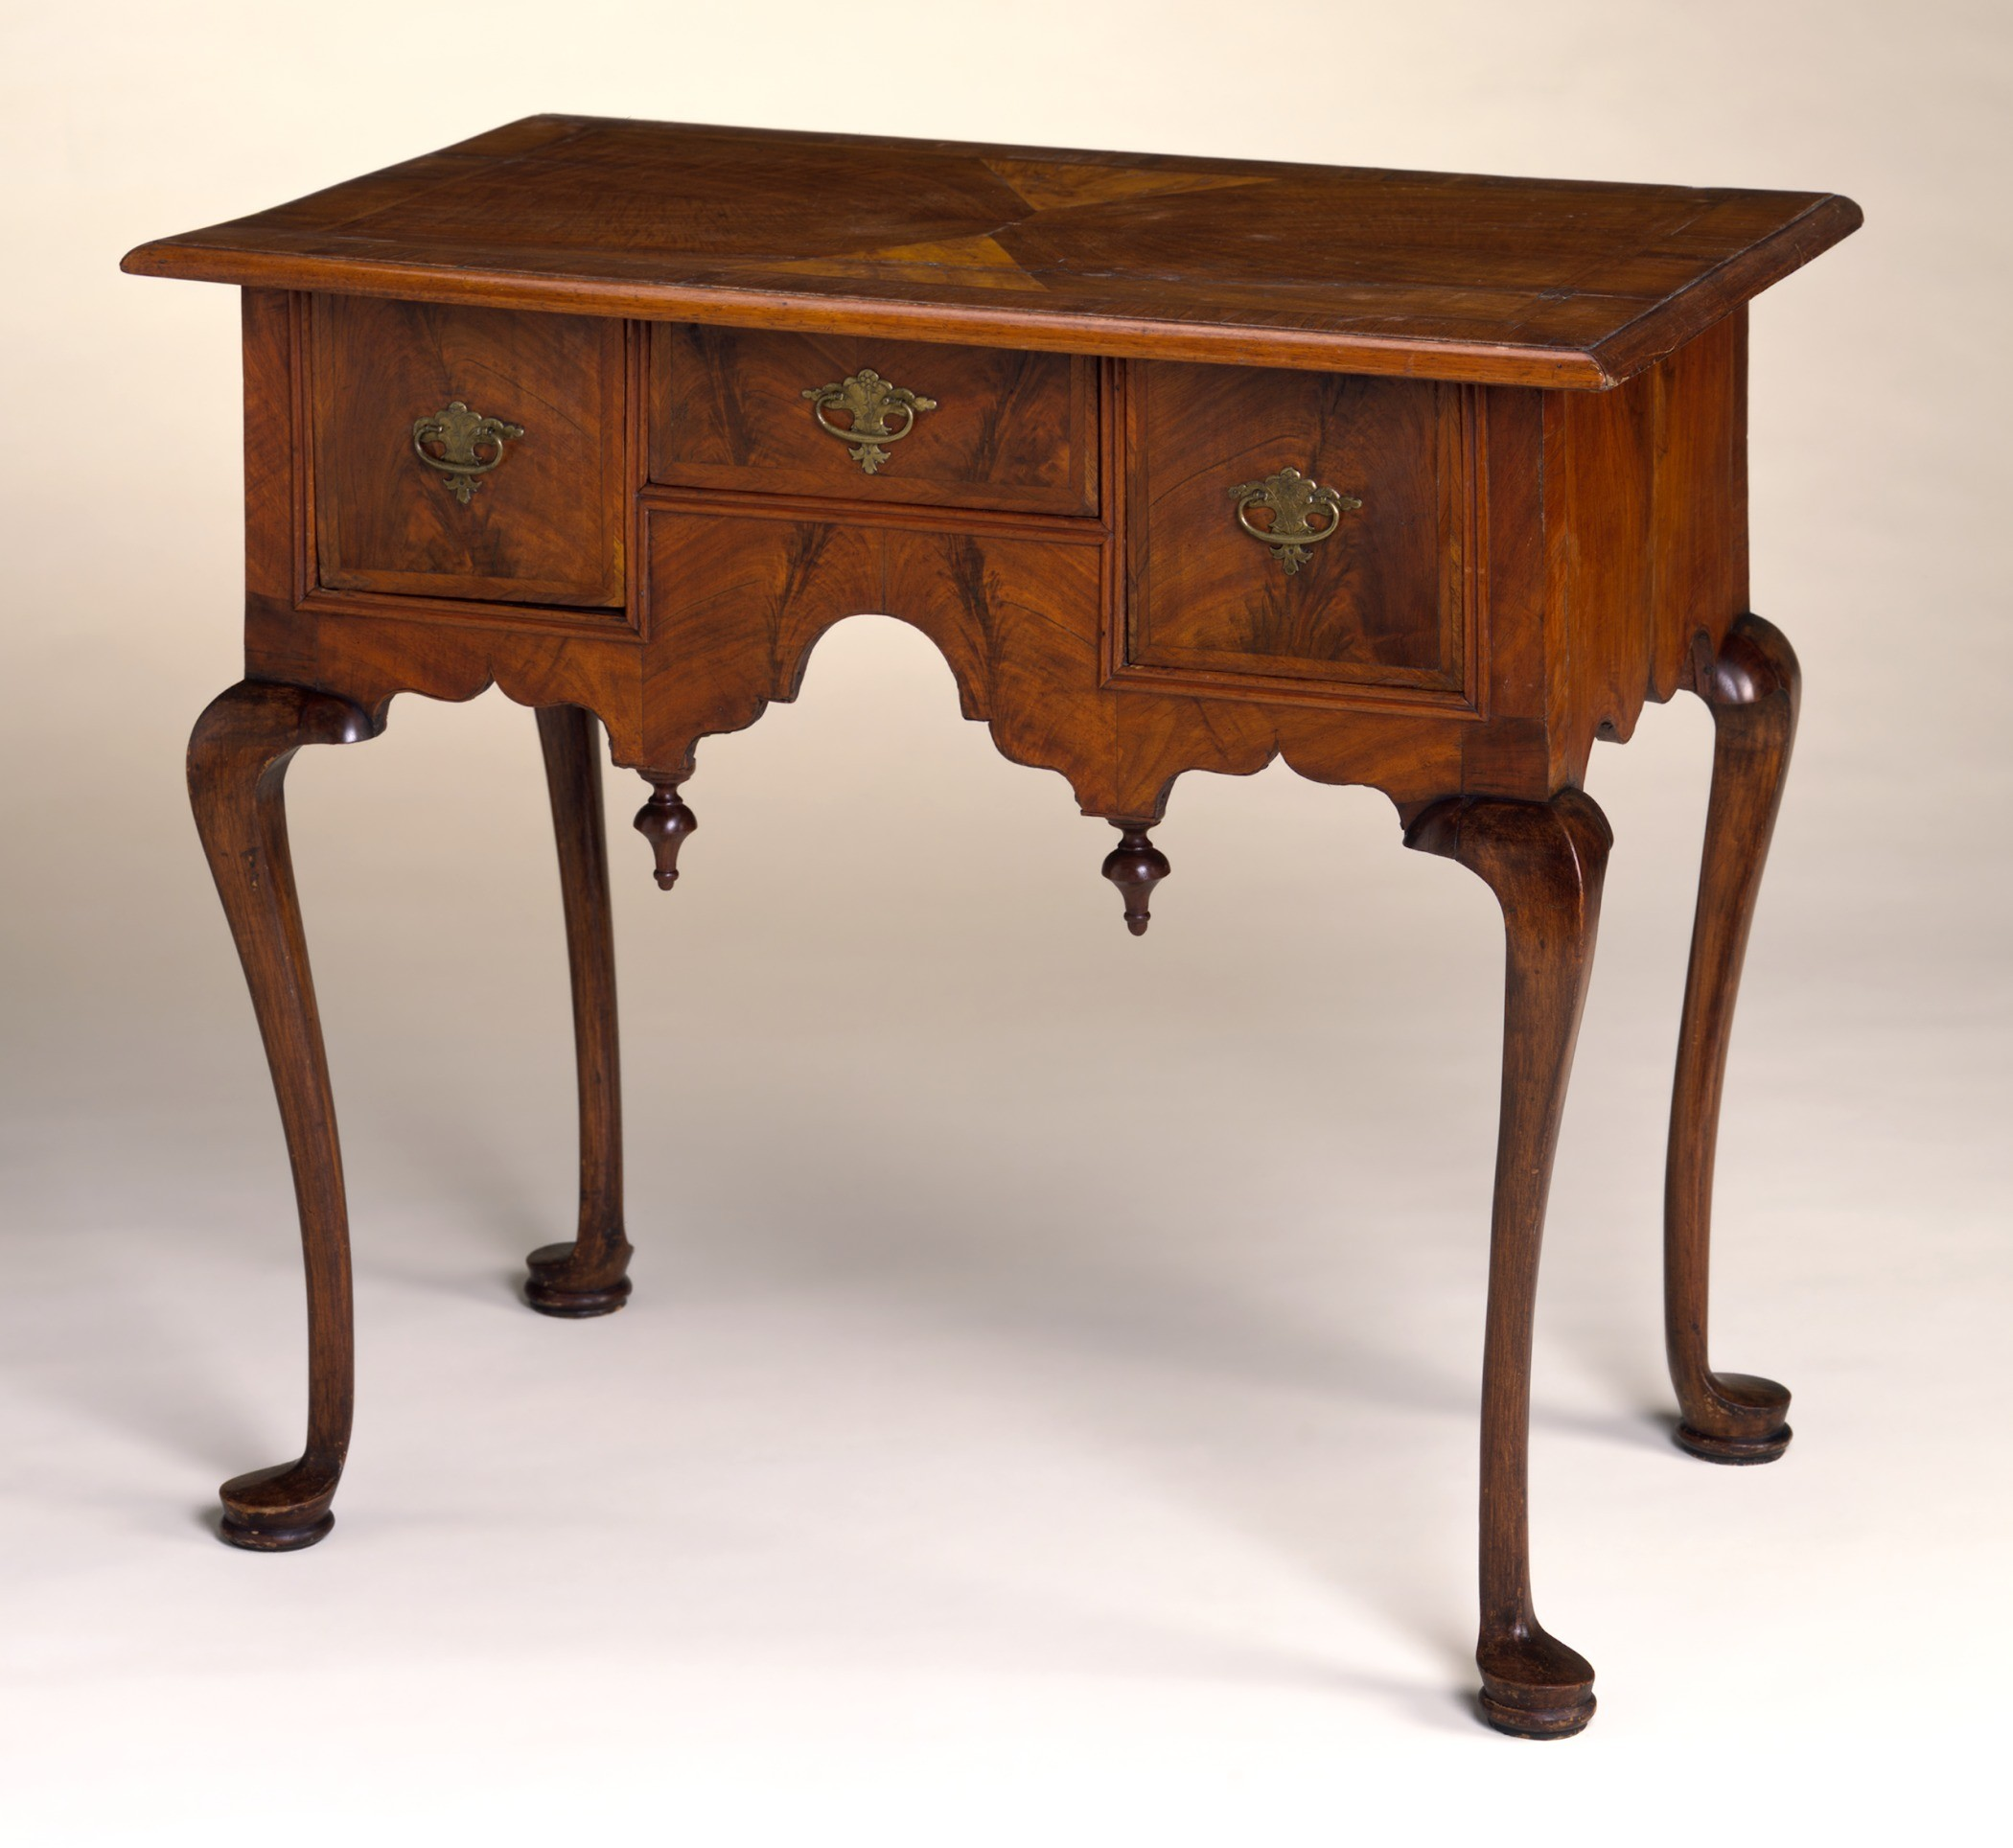 Queen Anne sofa Table Cute Filedressing Table with Cabriole Legs Lacma M1g Collection